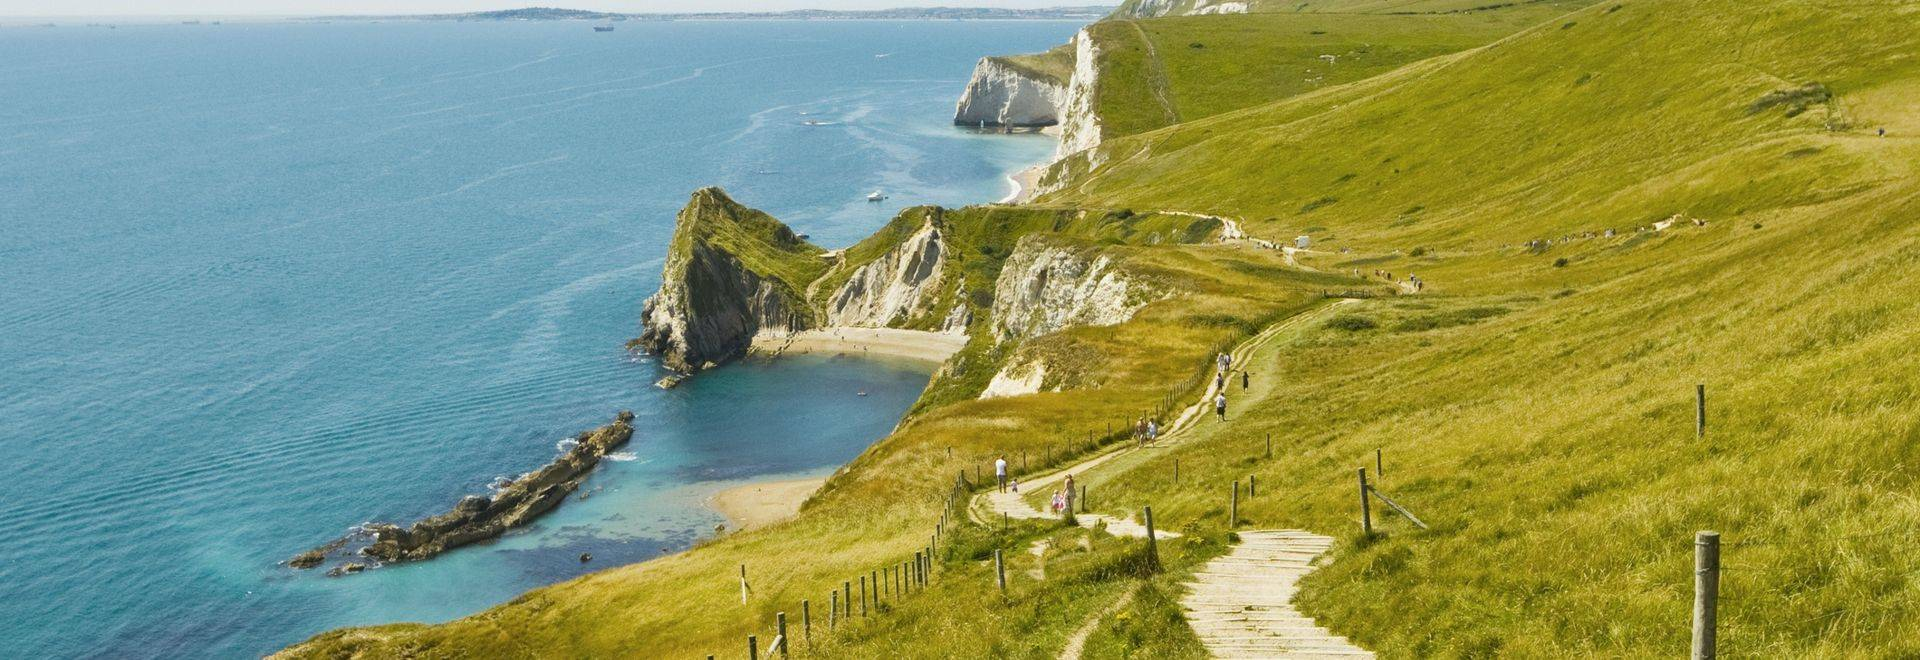 Coastline of Jurassic Coast in Dorset.